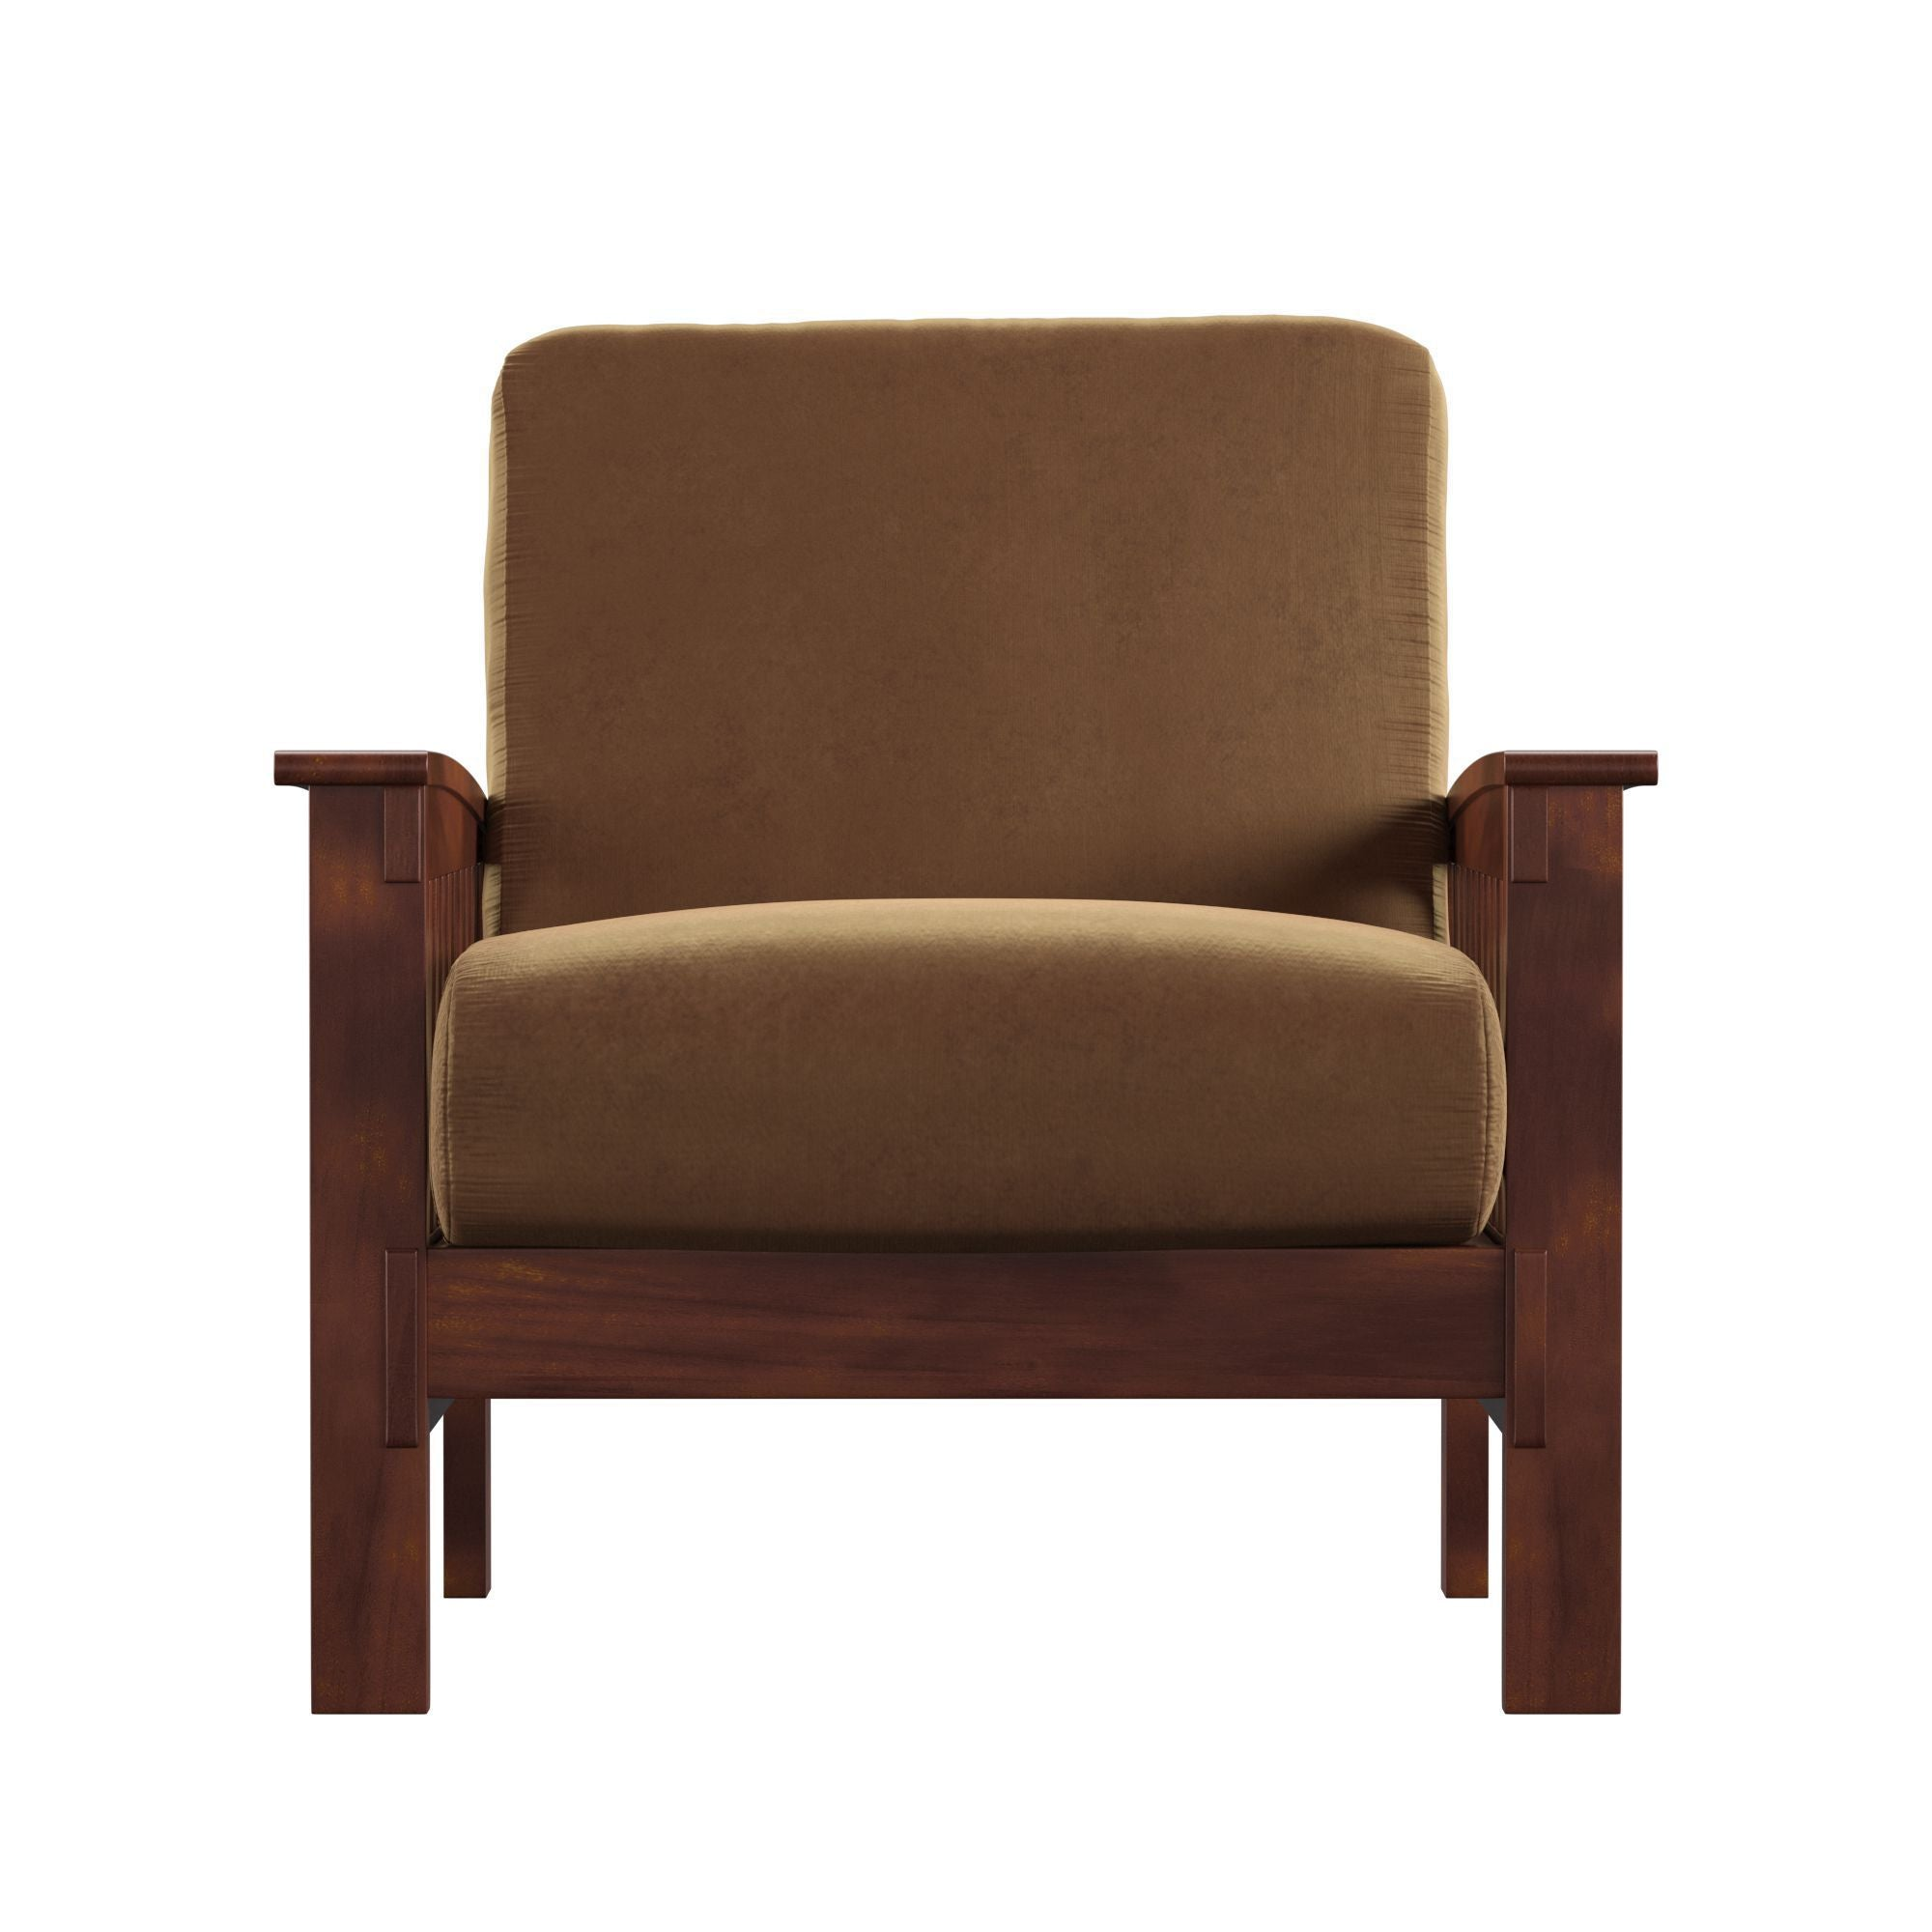 Mission-Style Wood Accent Chair - Rust Microfiber, Oak Finish